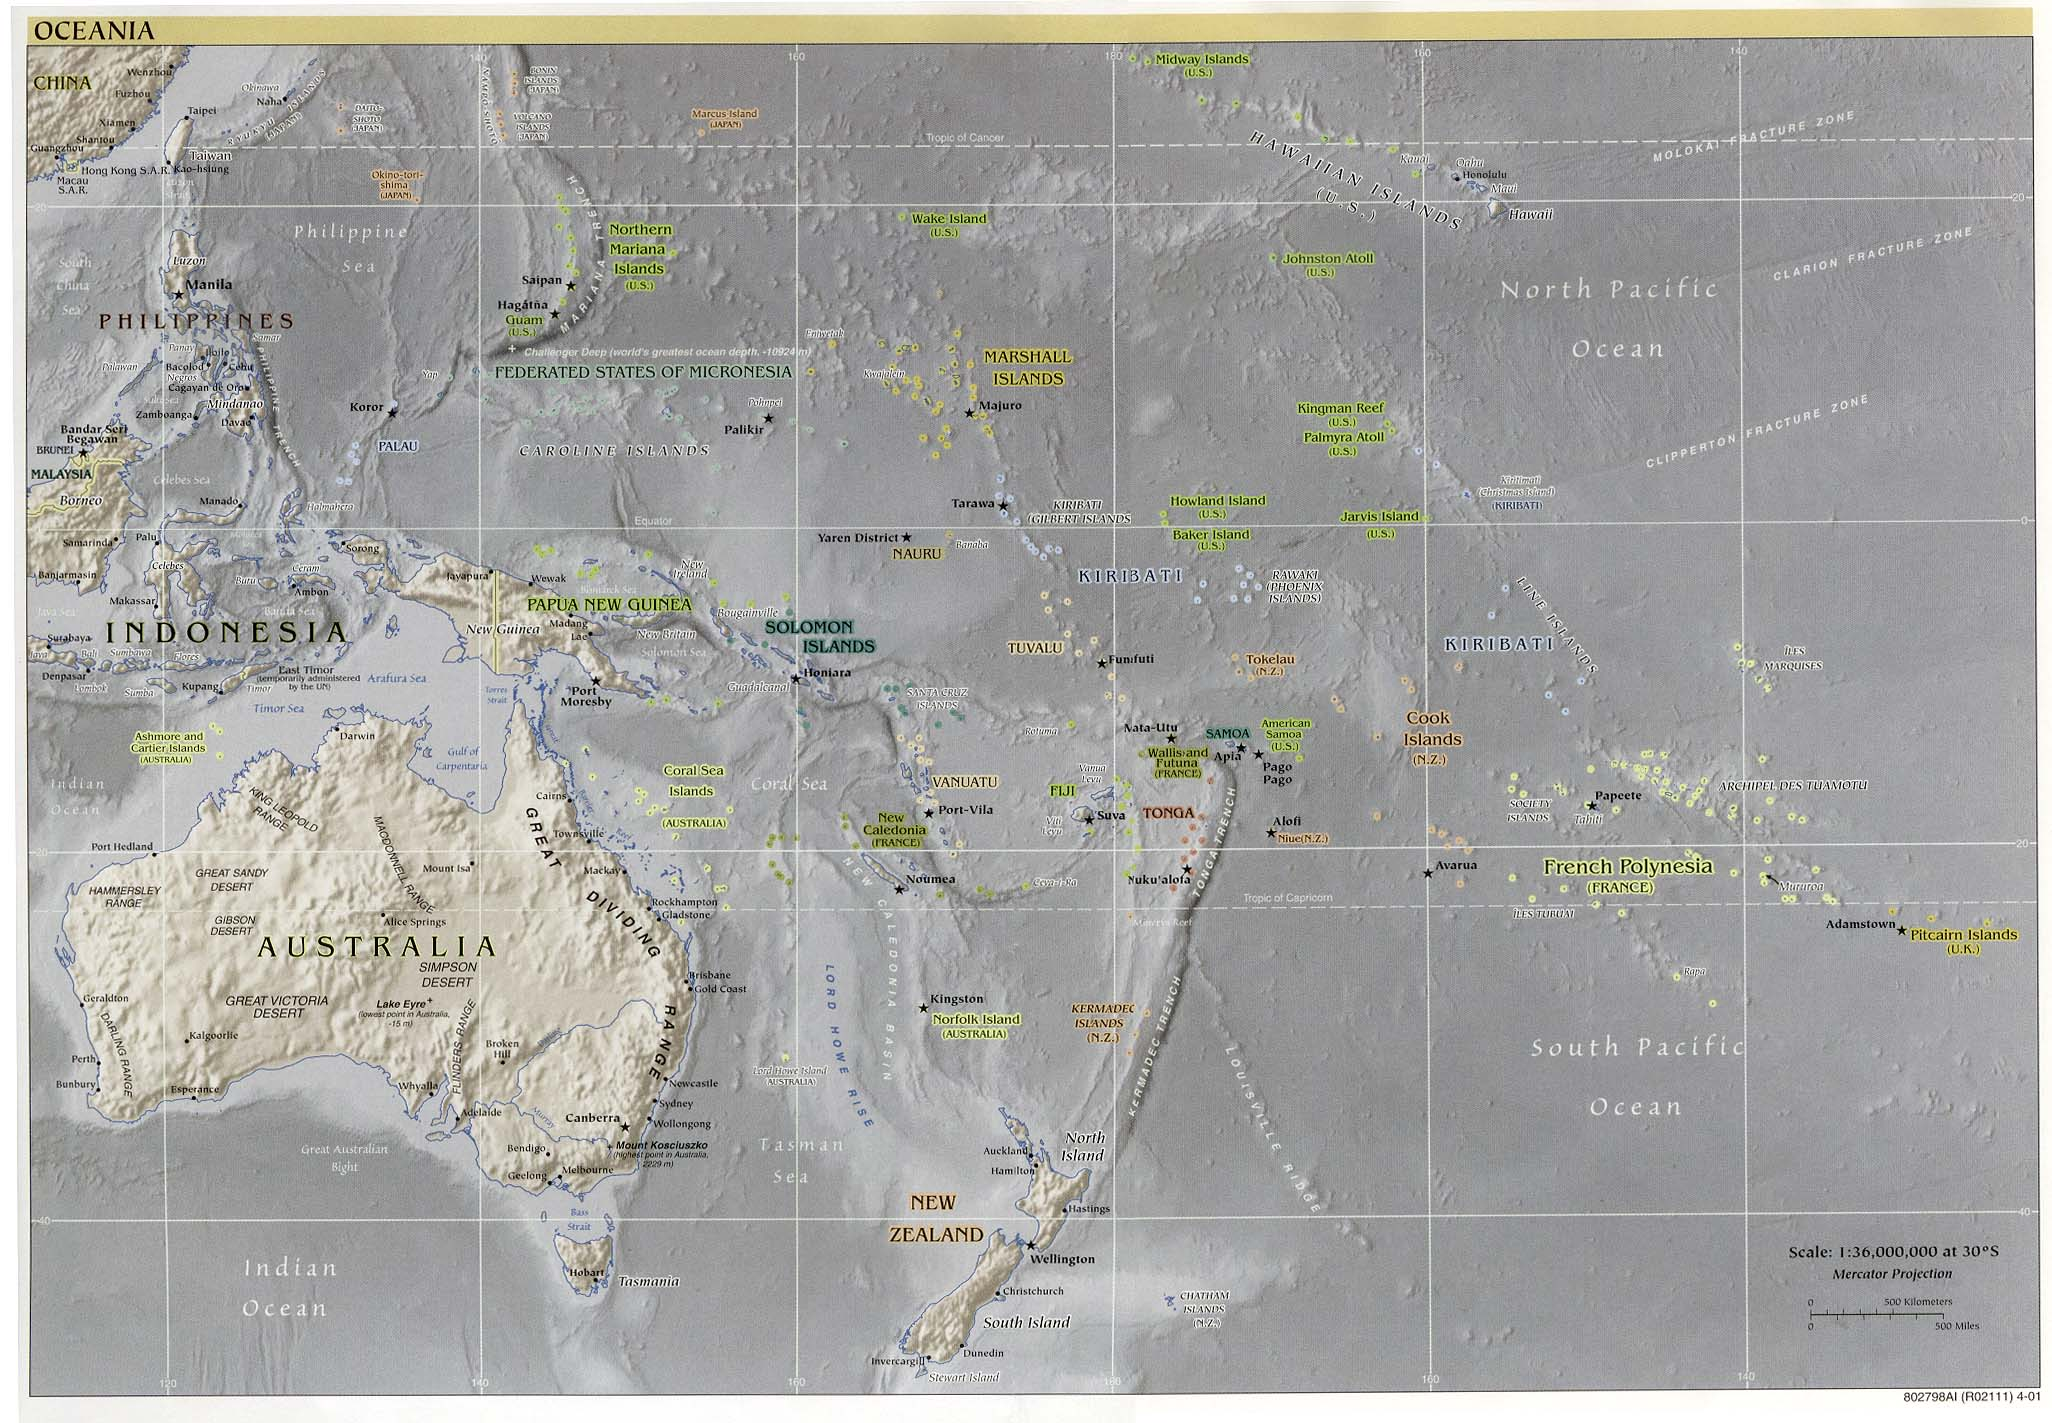 Free download australia oceania maps oceania reference sciox Image collections